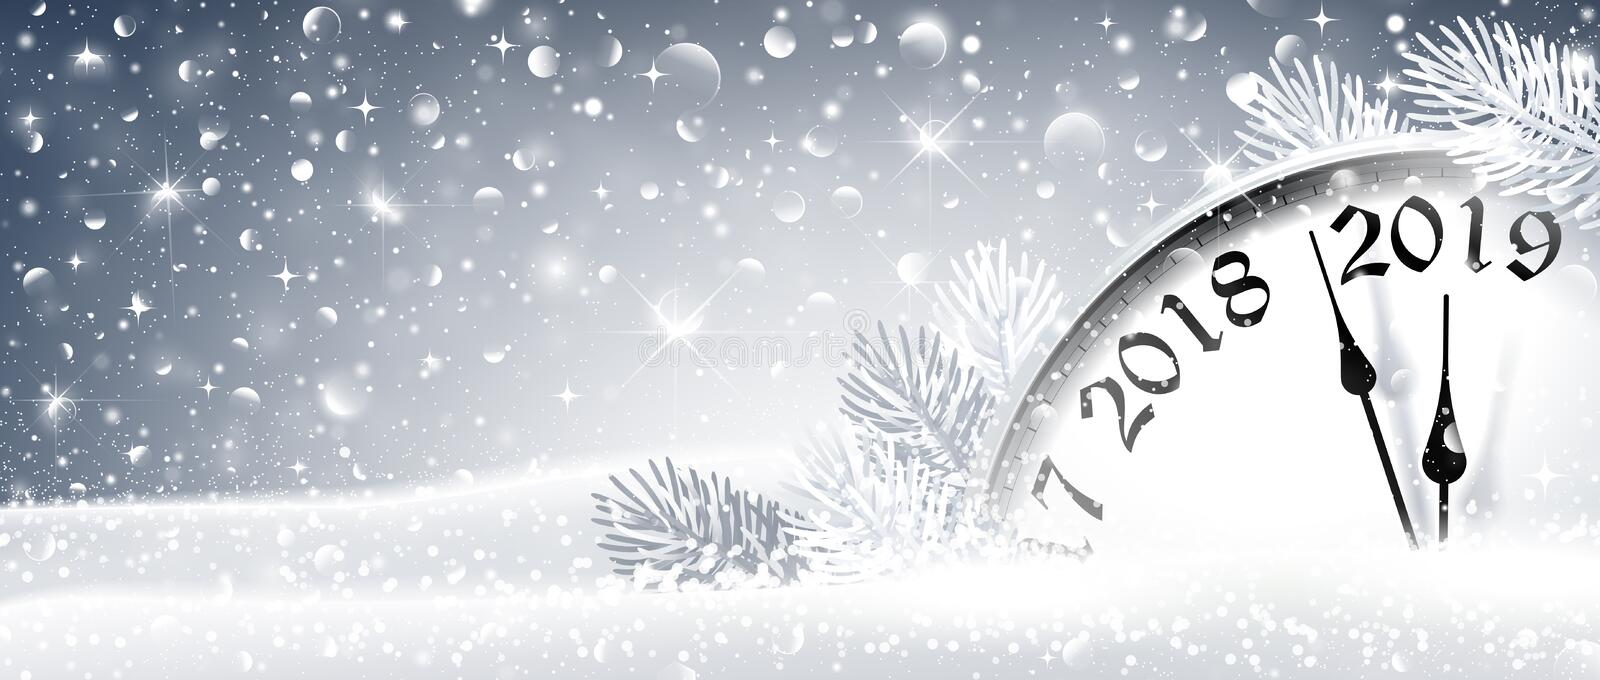 New Year`s Eve 2019 Winter Celebration With Dial Clock. Vector Illustration stock illustration